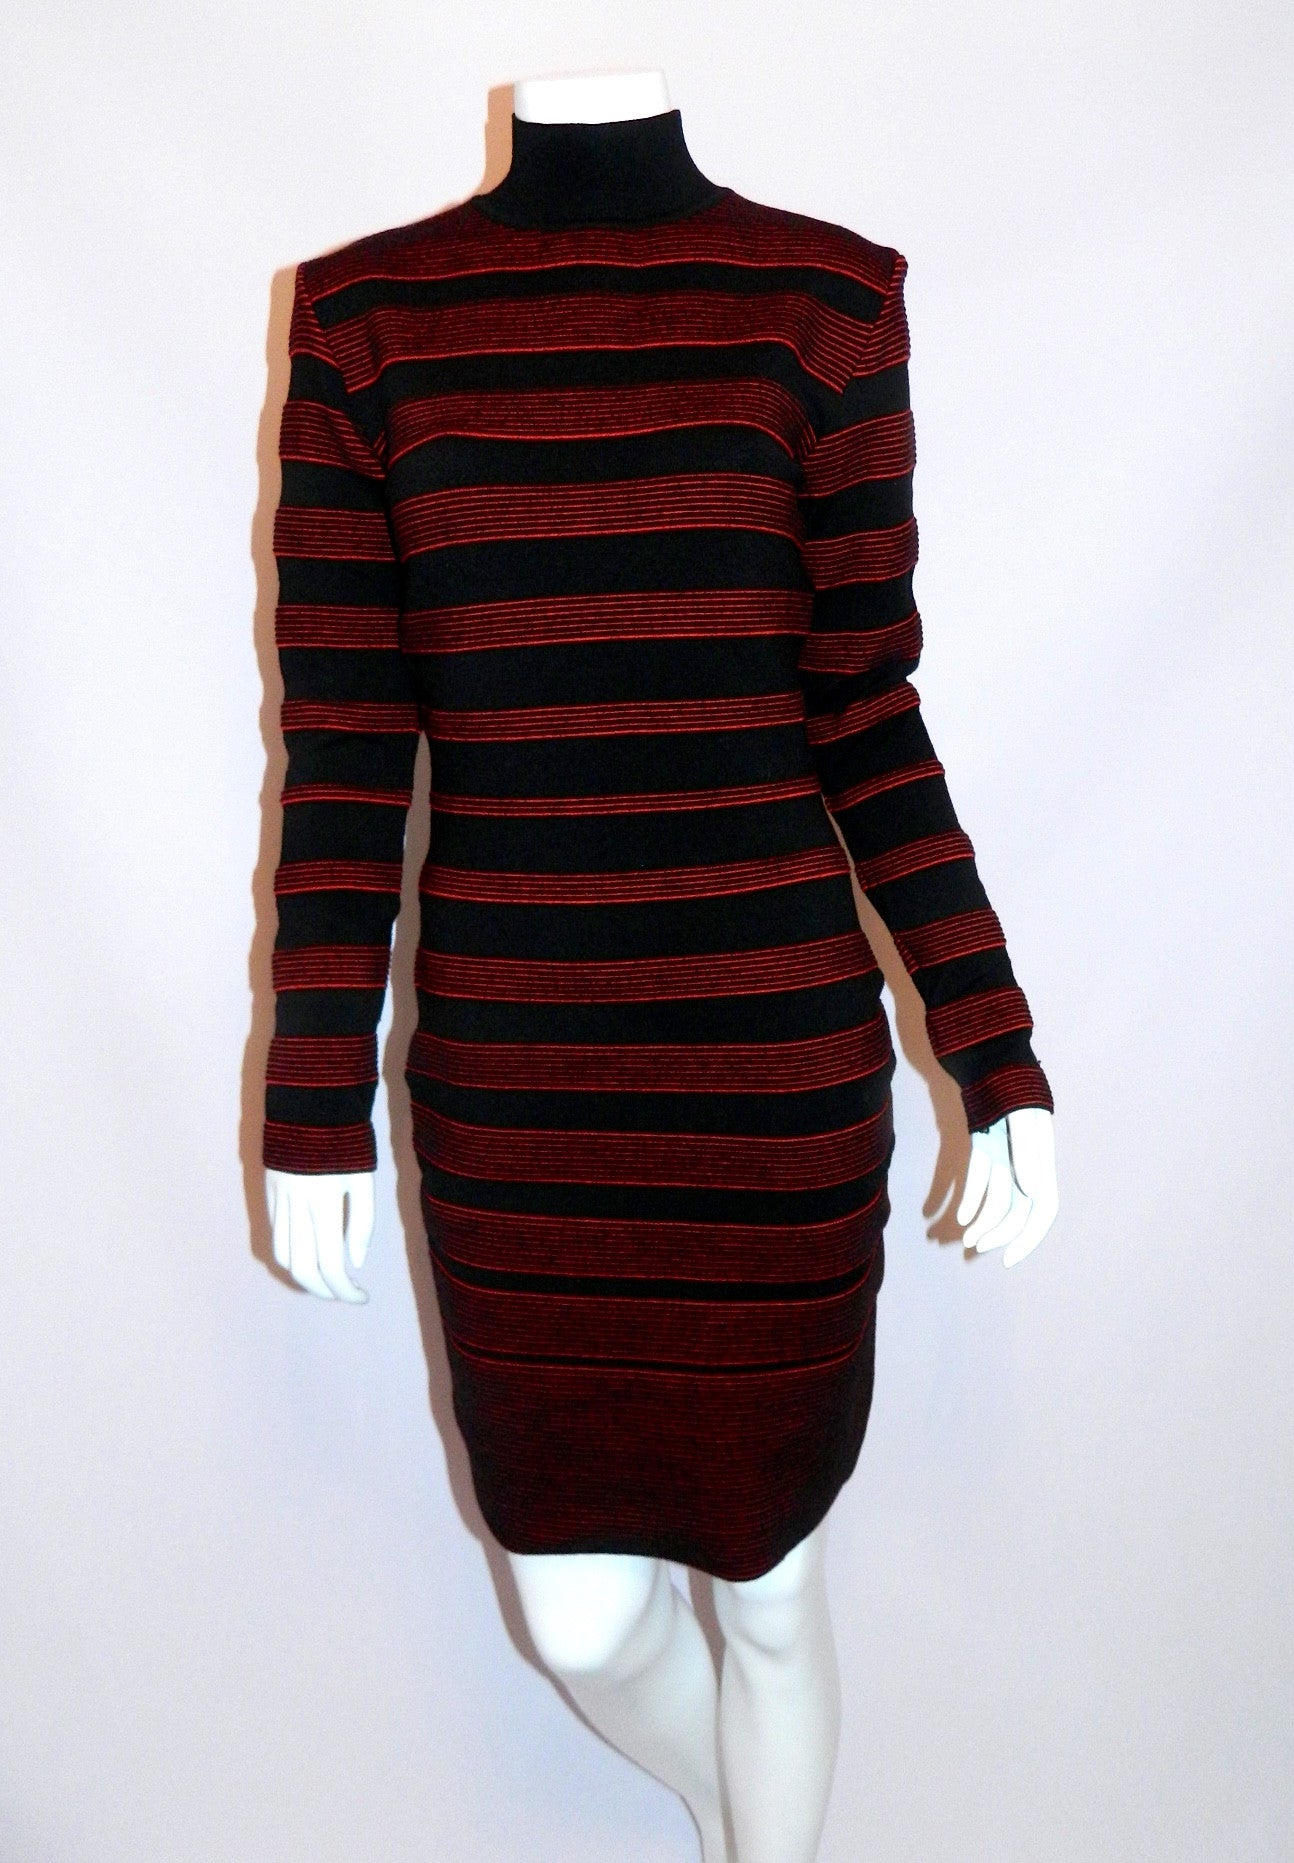 vintage 1980s dress Thierry Mugler by Alaia Bandage wool Body Con knit OSFM